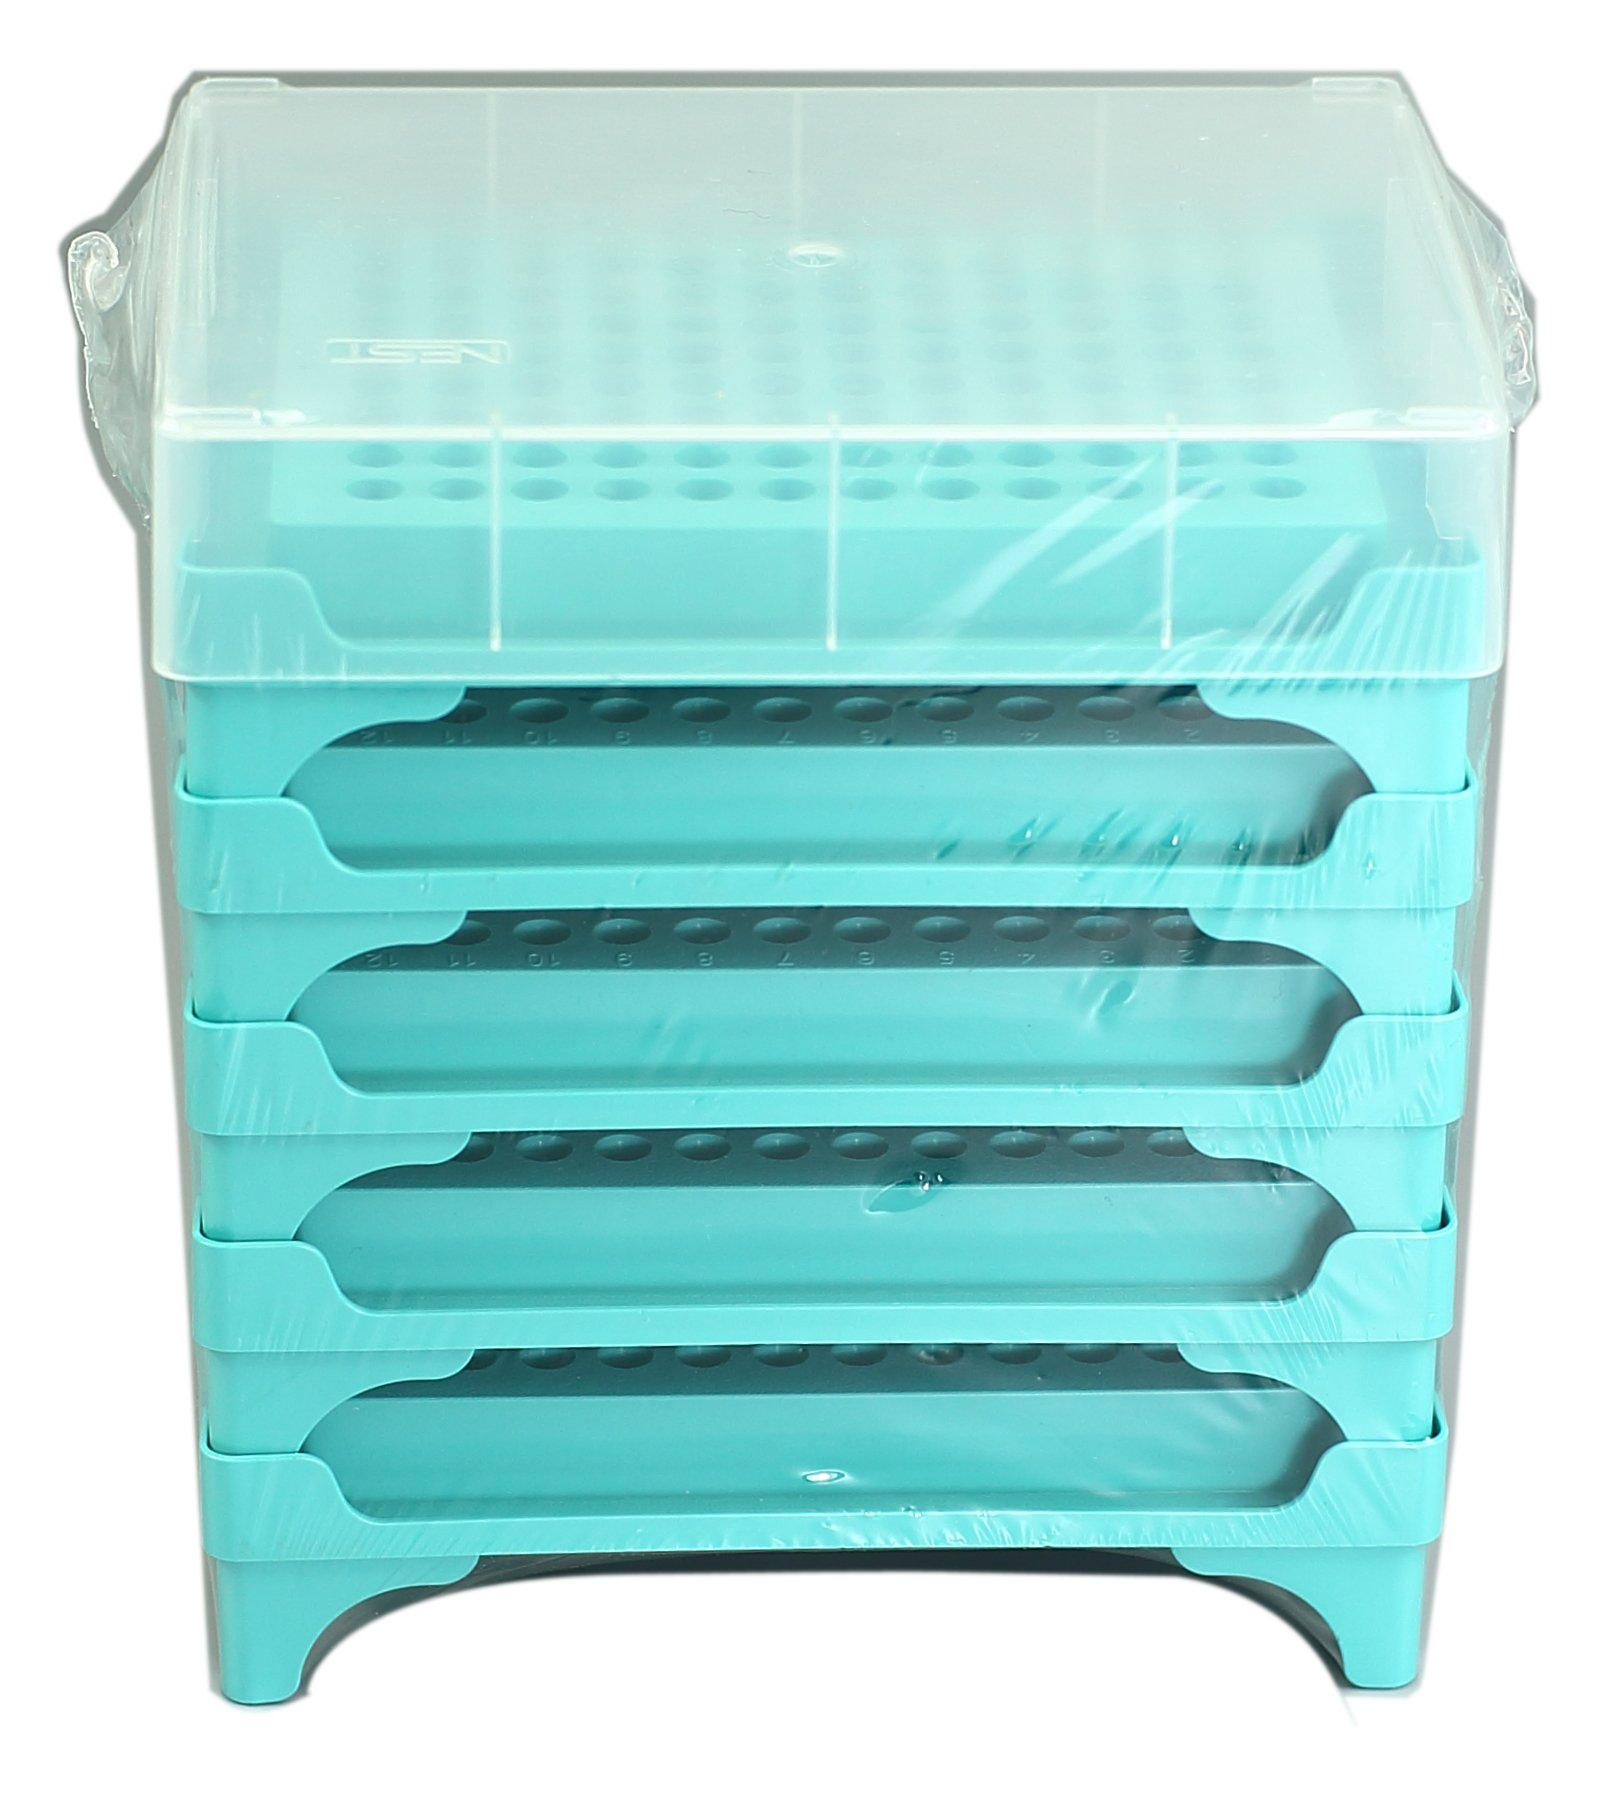 Nest Scientific 407101 PCR Tube Rack, 96 Well (8 x 12), One Cap for 5 Pieces, 5 per Pack, 25 per Case (Pack of 25)